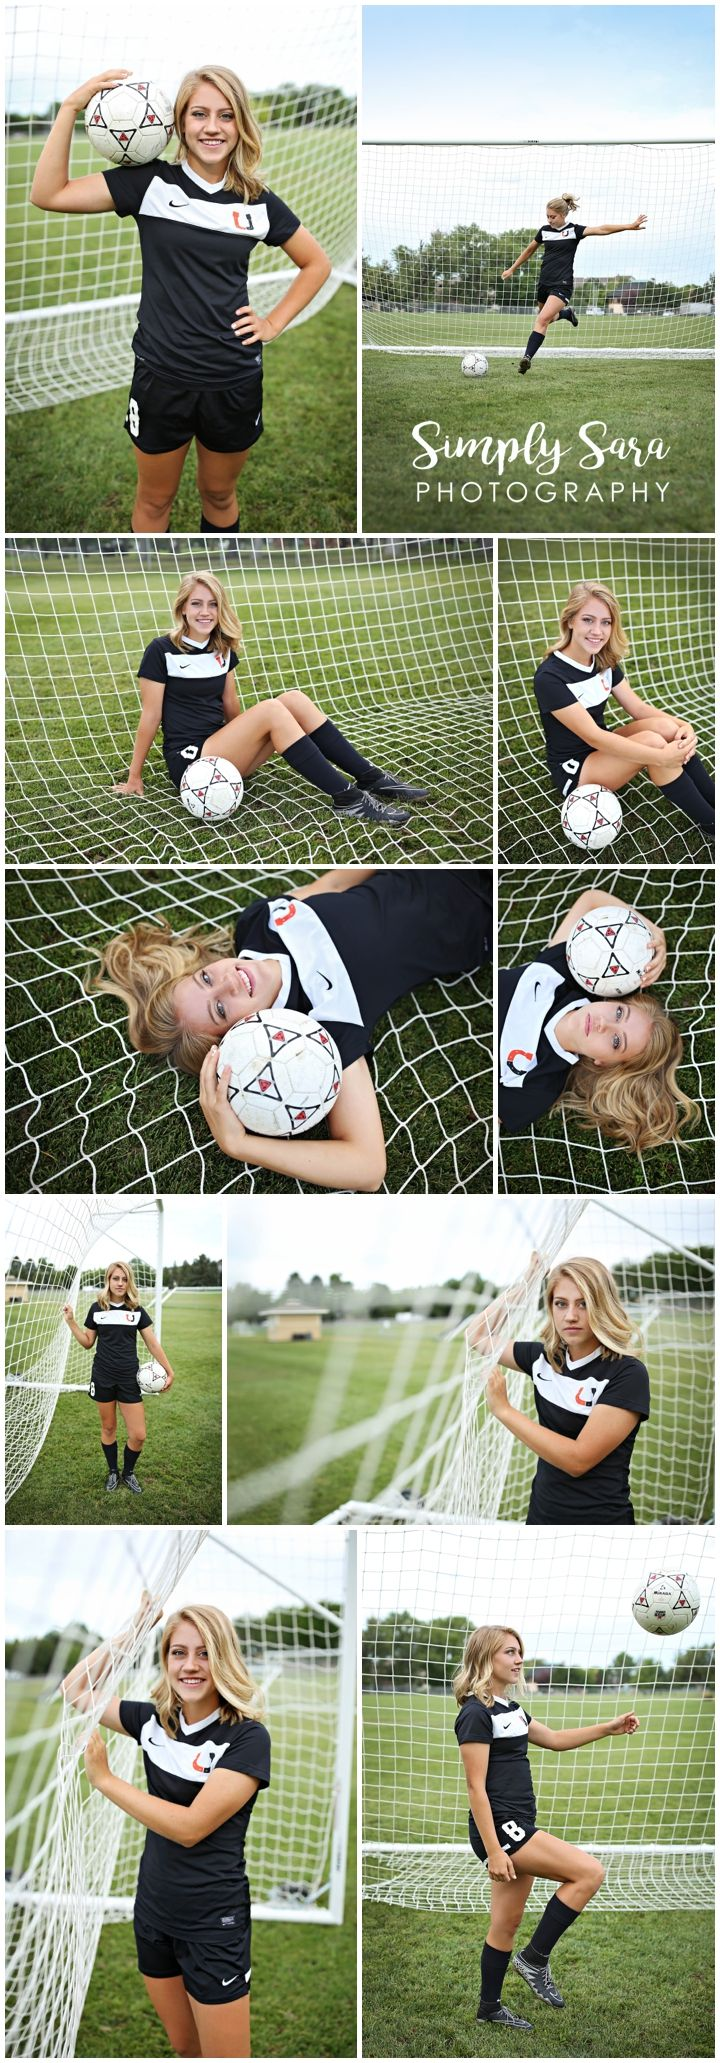 Senior Portrait Photos & Poses for Girls - Outdoor Photo Shoot - Grassy Field - Soccer - Sports - Billings, MT High School Senior Portrait Photographer